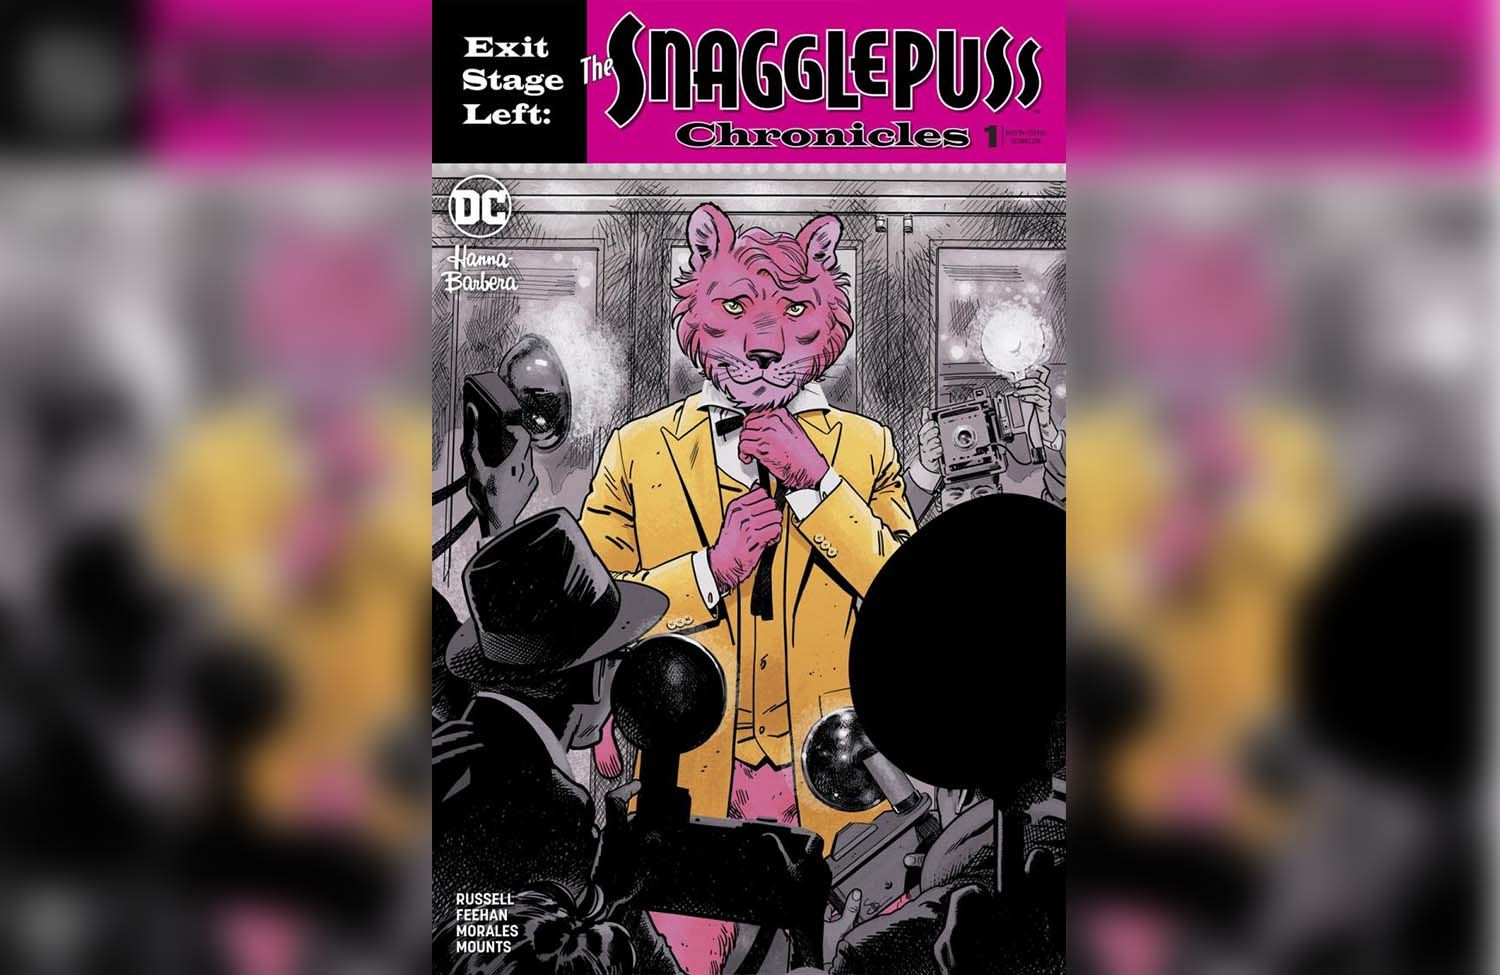 Exit_Stage_Left_The_Snagglepuss_Chronicles 1